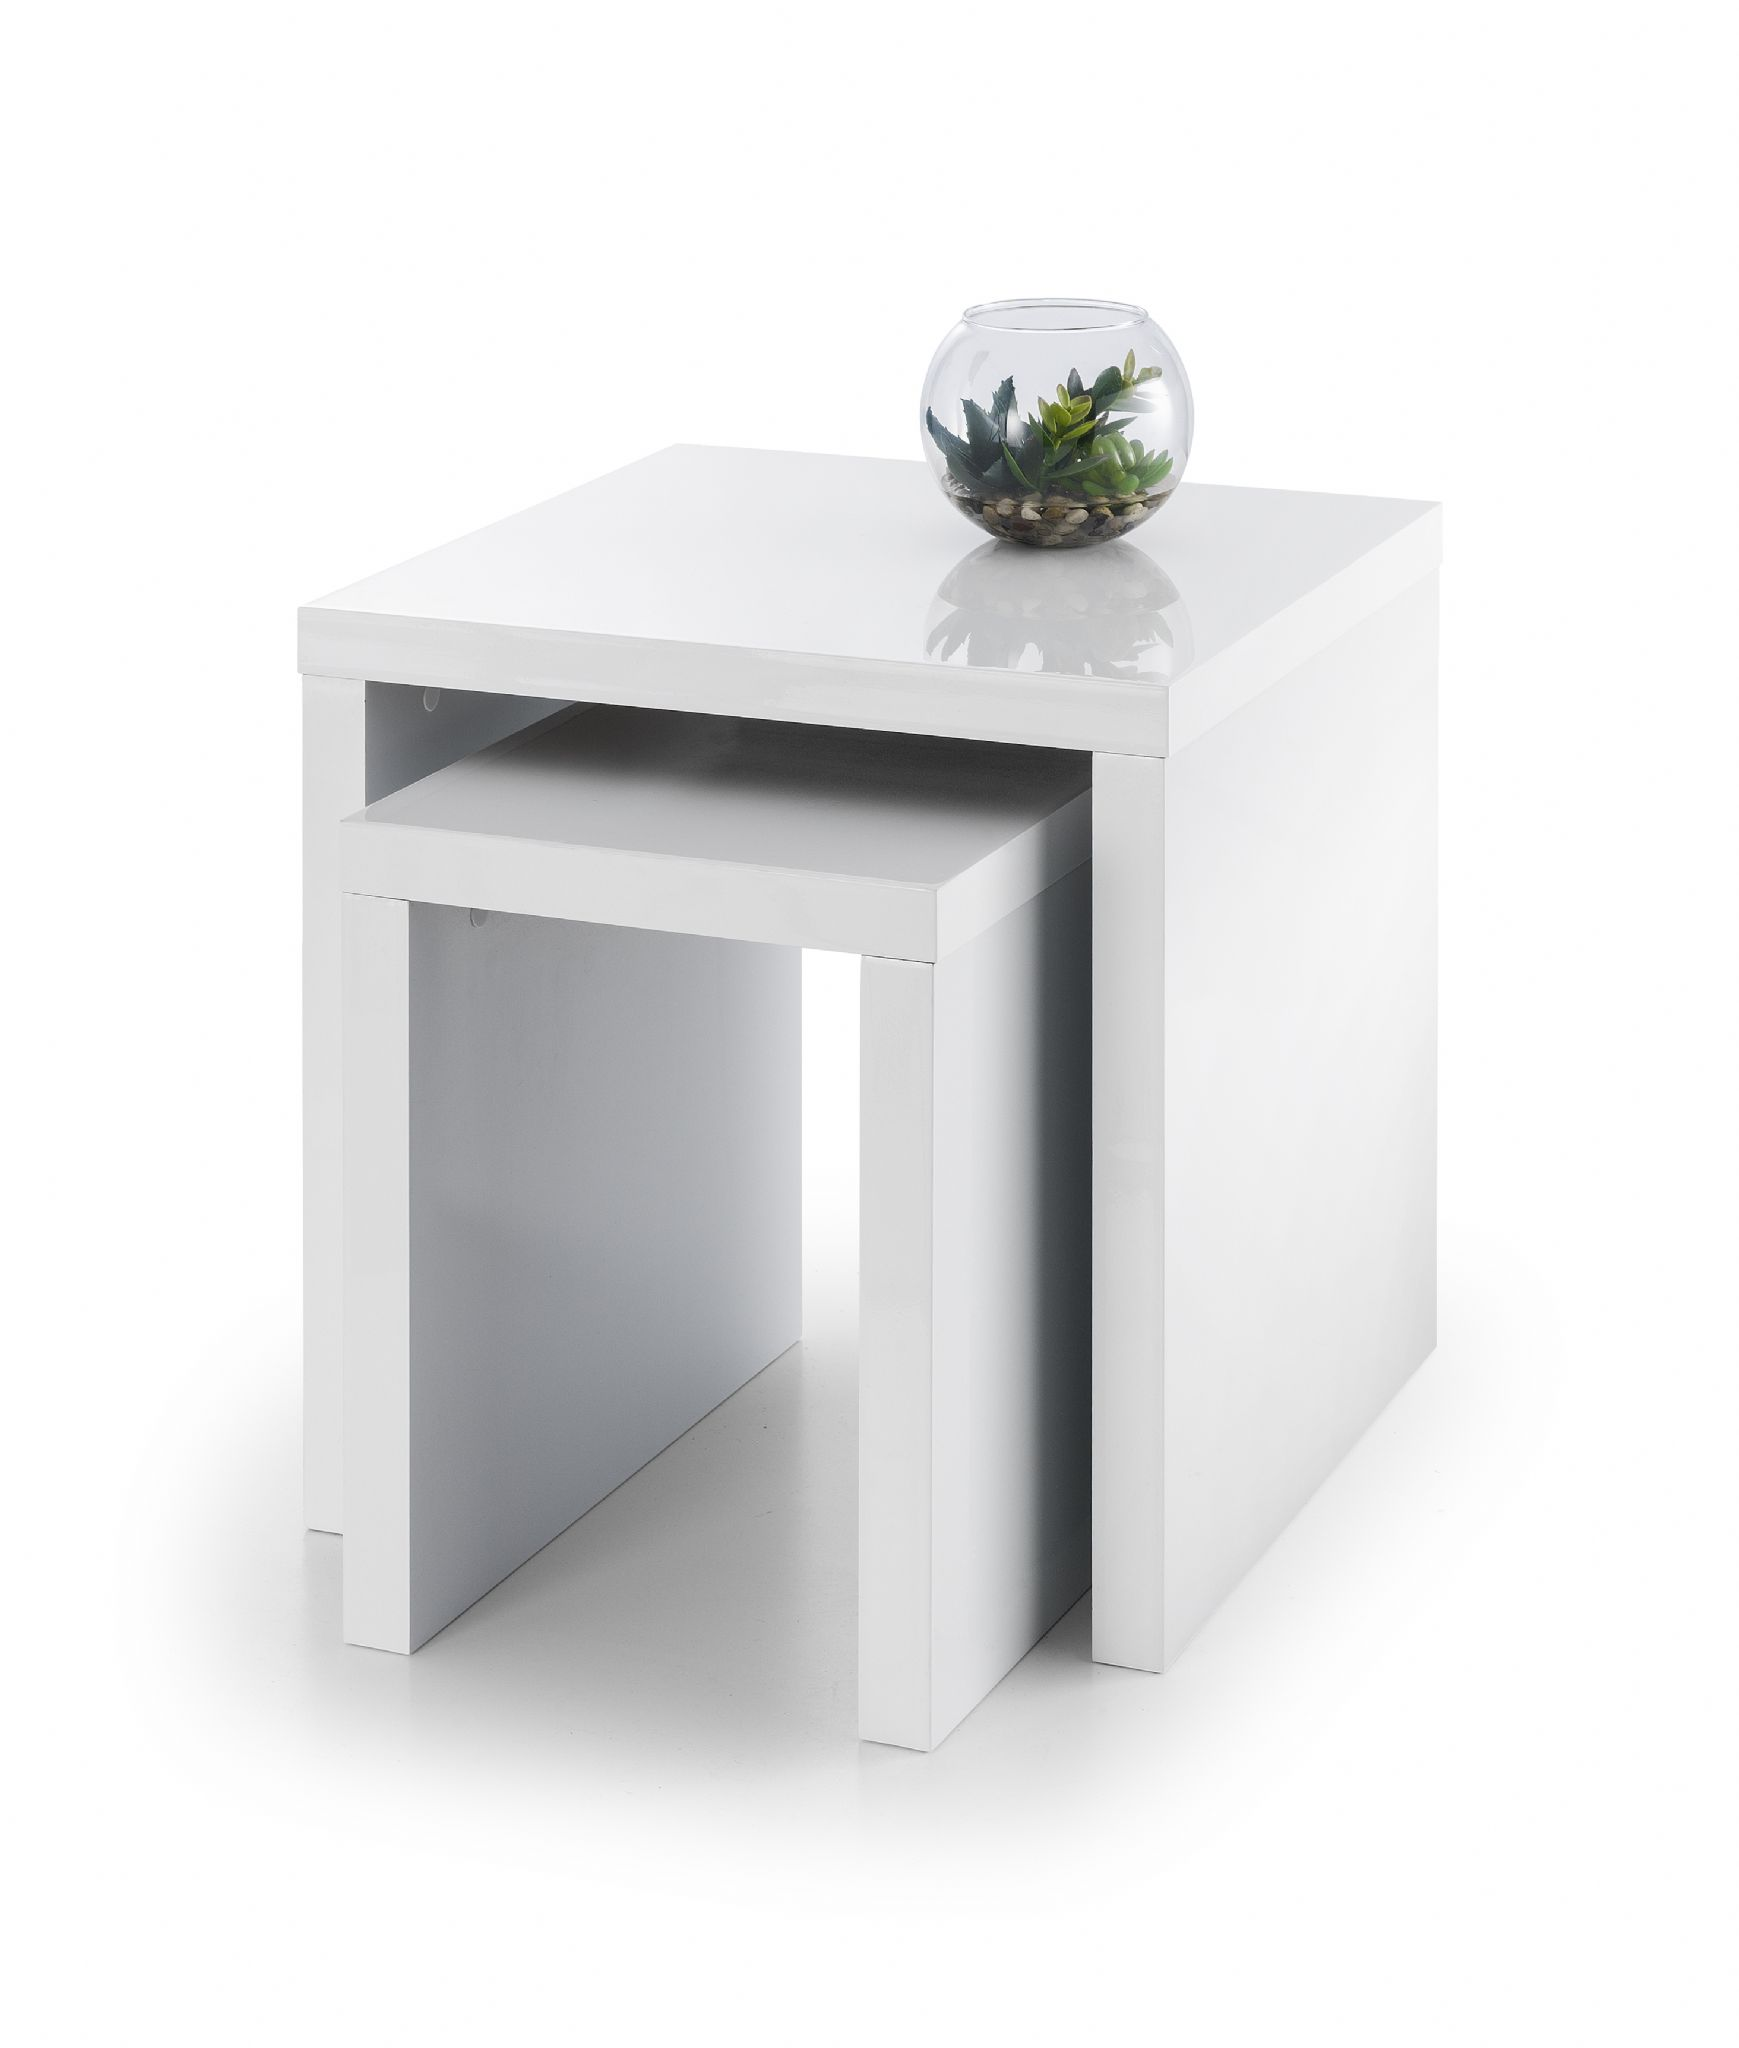 Algeciras White High Gloss Lacquered Finish Nest Of Tables